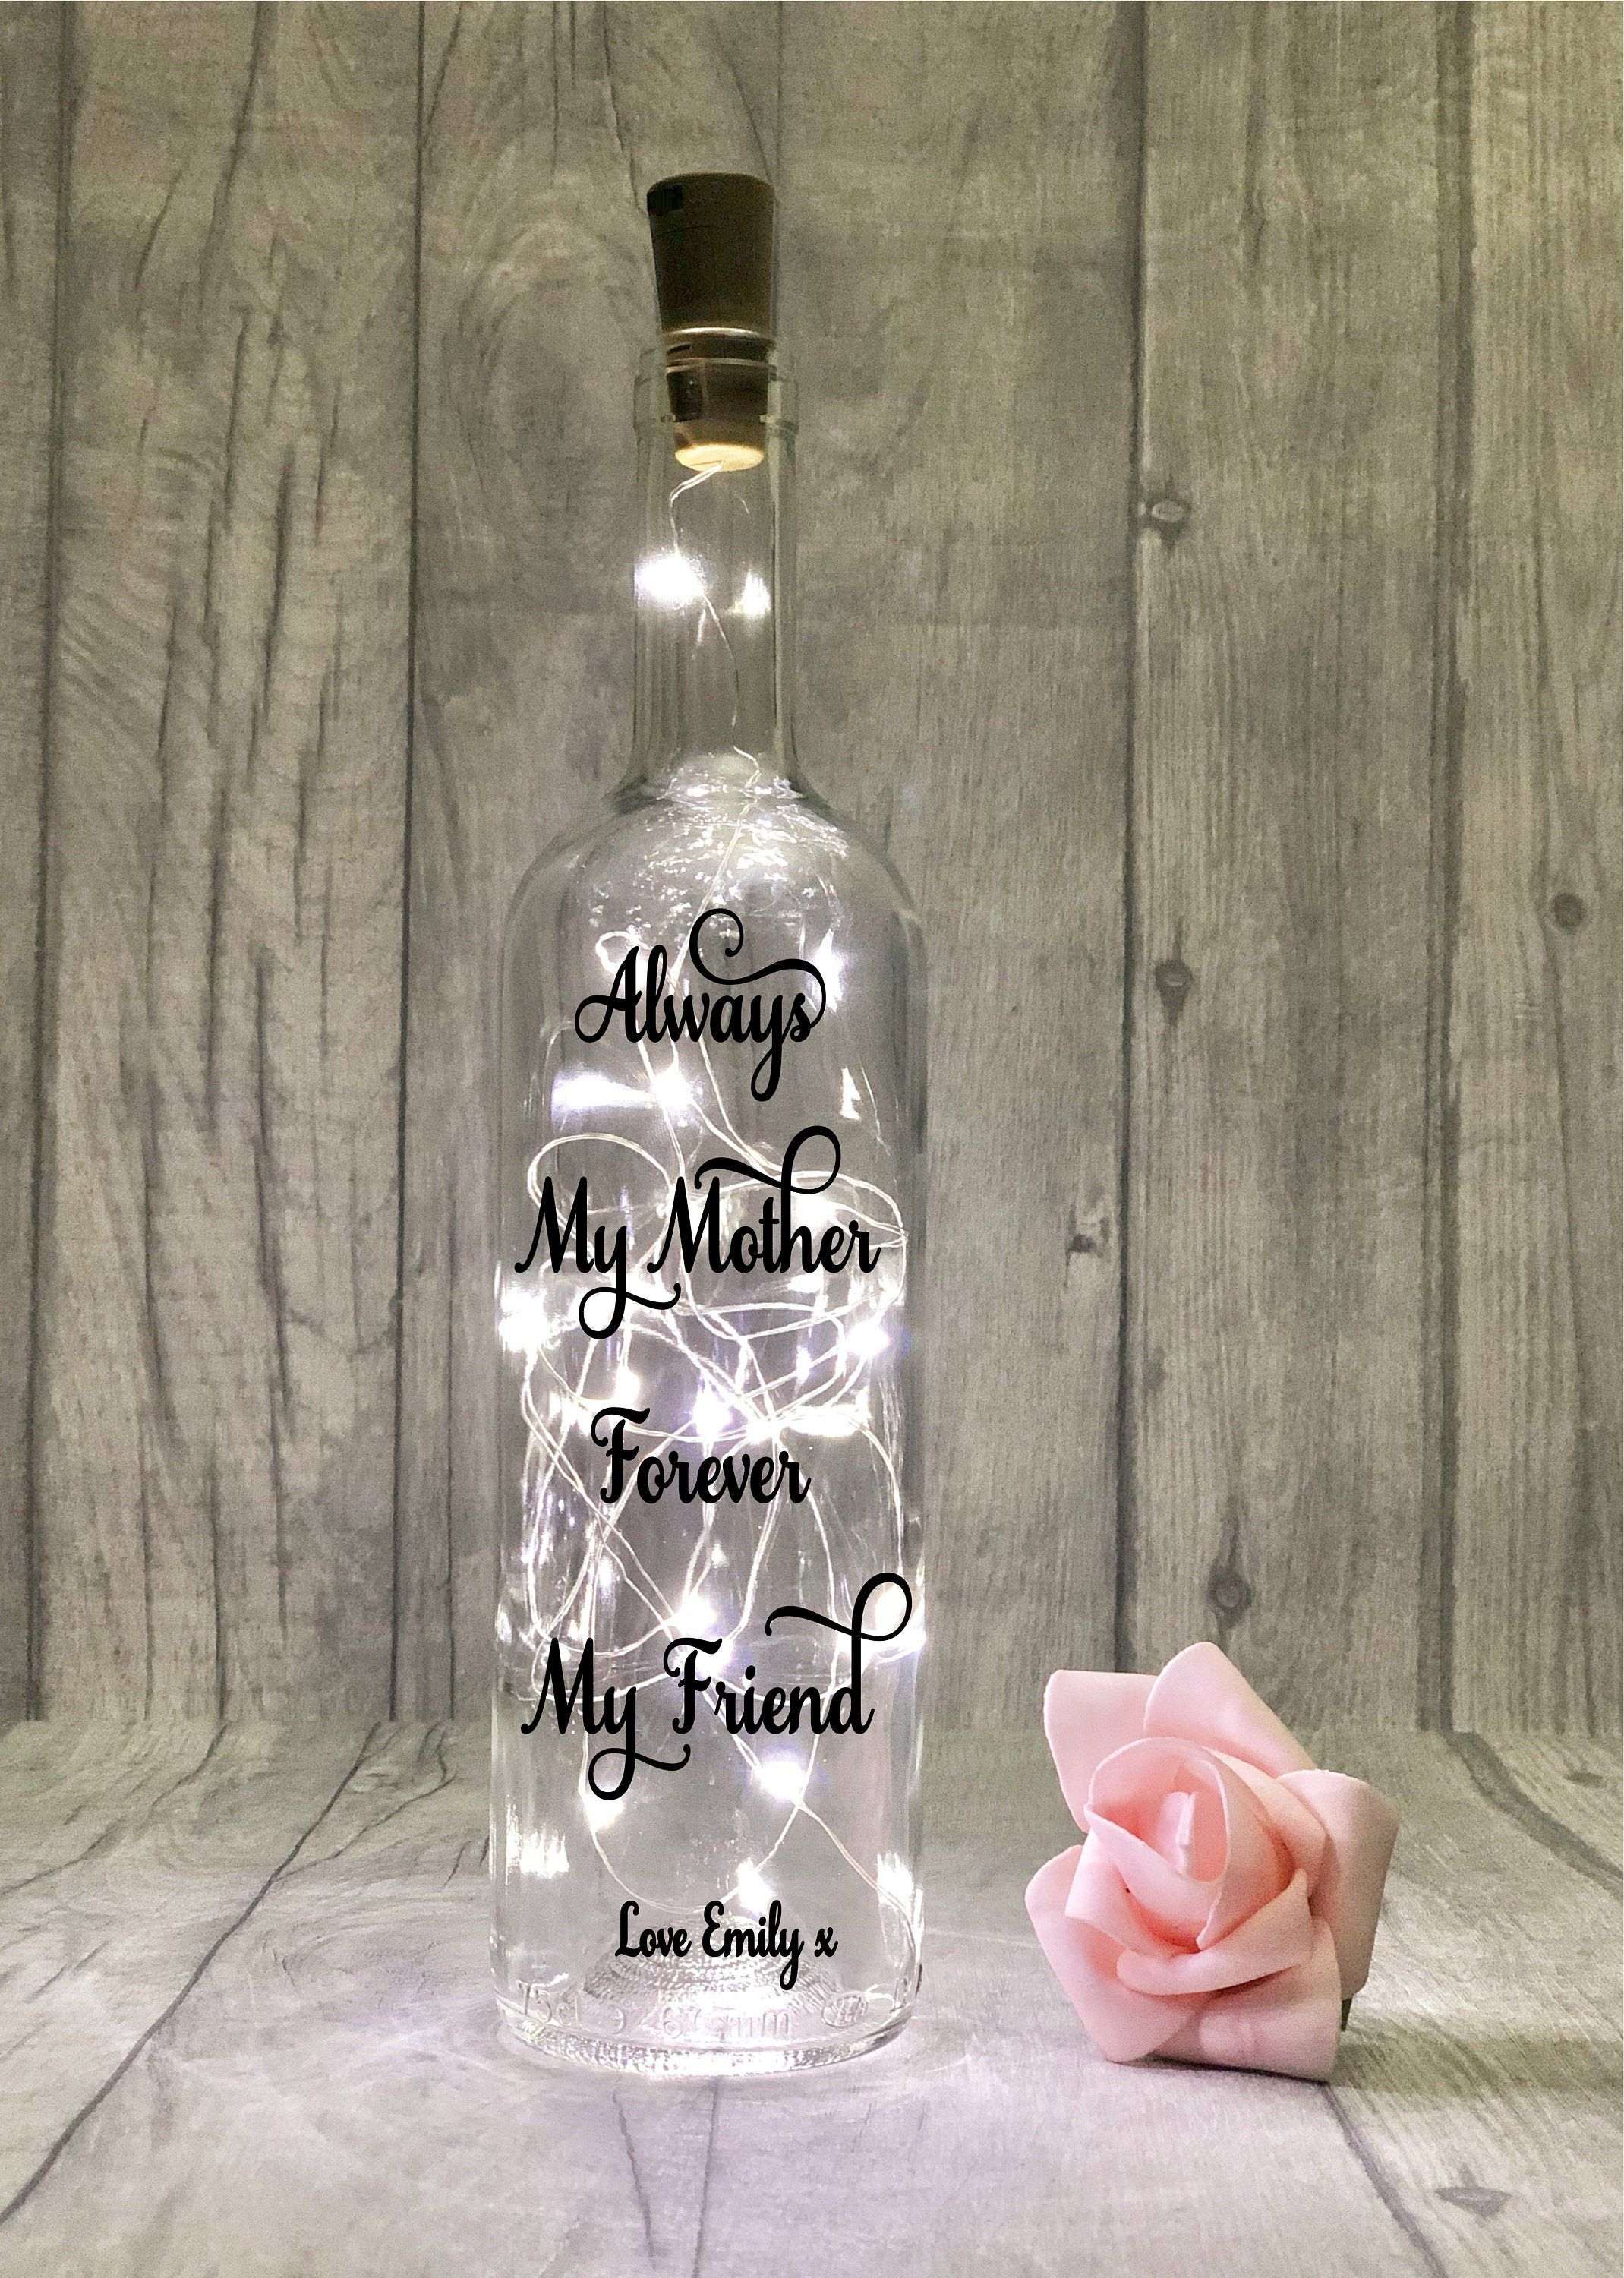 Personalised Mother S Day Gift Wine Bottle Lights Mother Daughter Gift Mum Quote Custom Mommy Present Mom Birthday Christmas Gift Ideas In 2020 Personalized Mother S Day Gifts Mother Christmas Gifts Mother Daughter Gifts